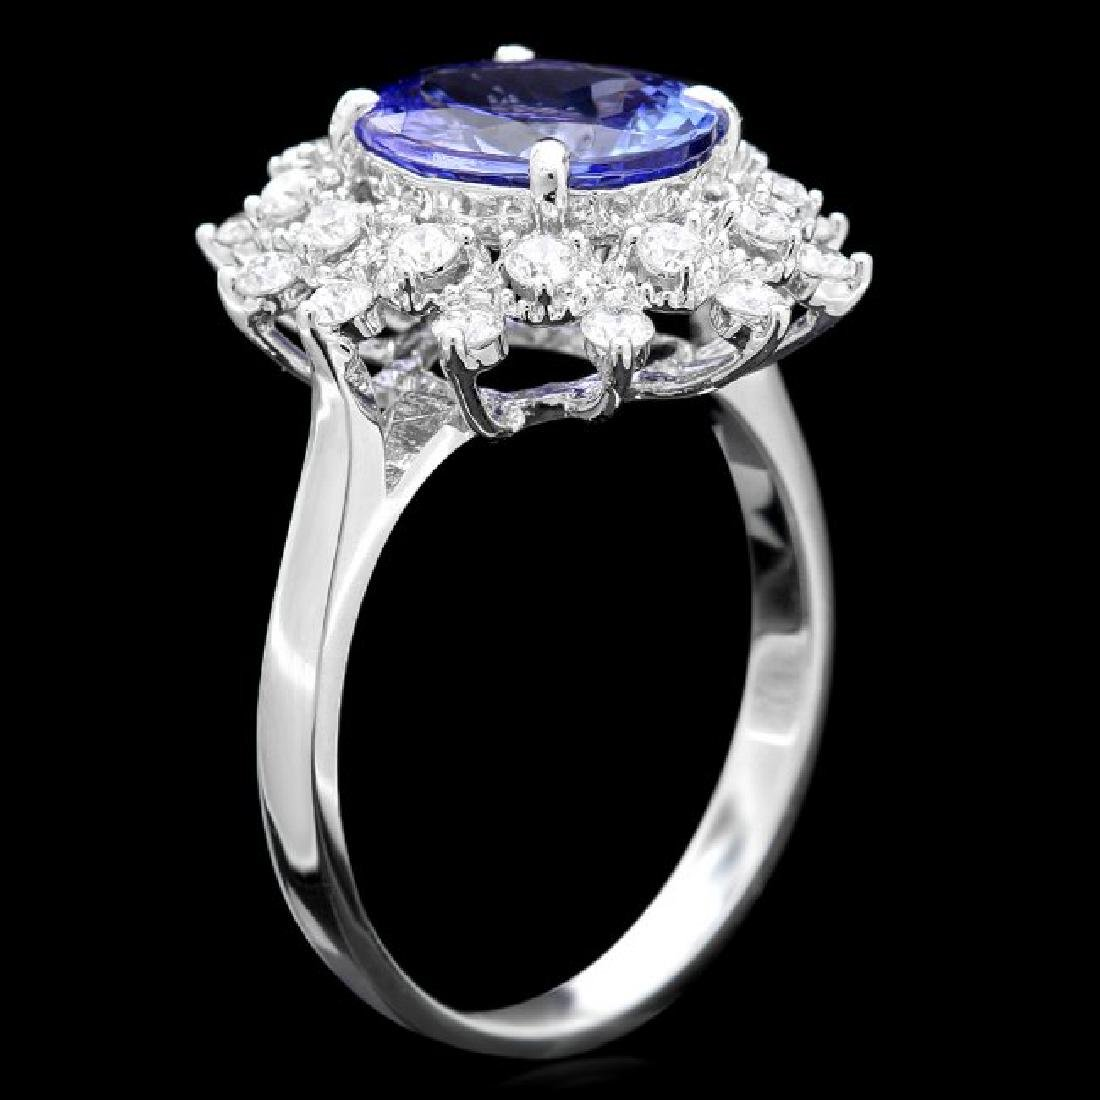 14k Gold 2.60ct Tanzanite 0.65ct Diamond Ring - 3